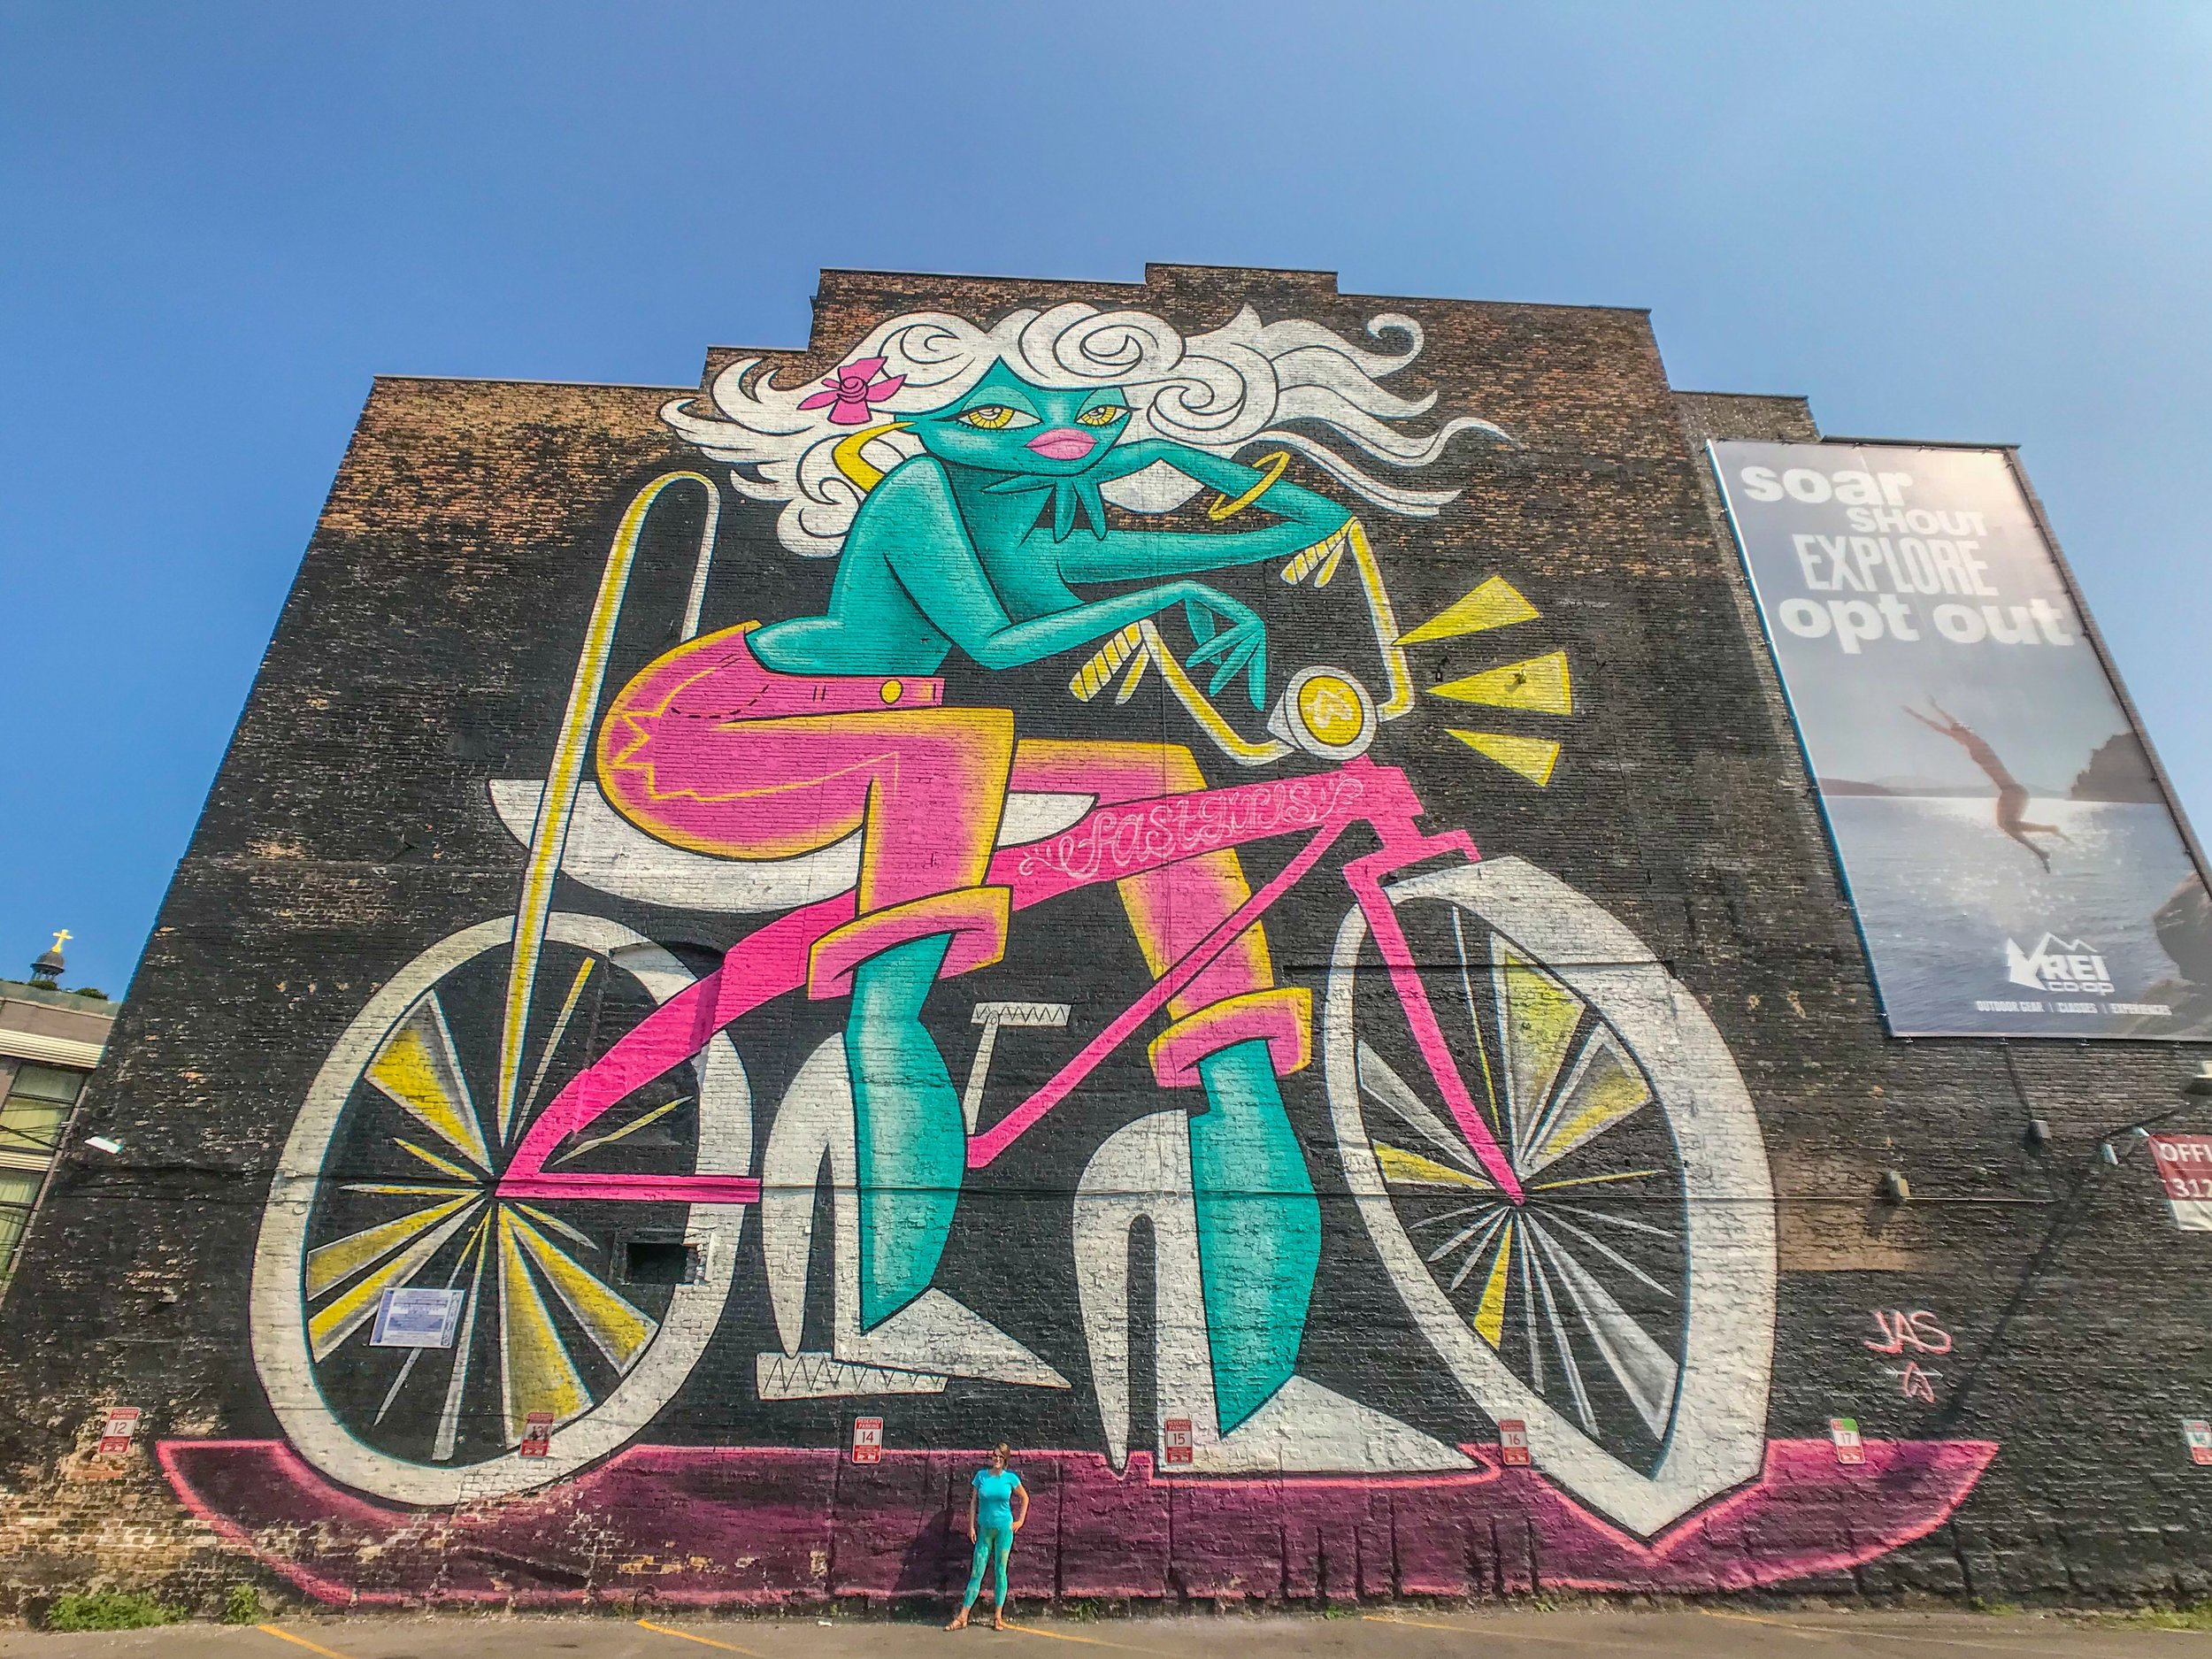 Chicago's Fast Girl Mural, painted by Jas Peterson